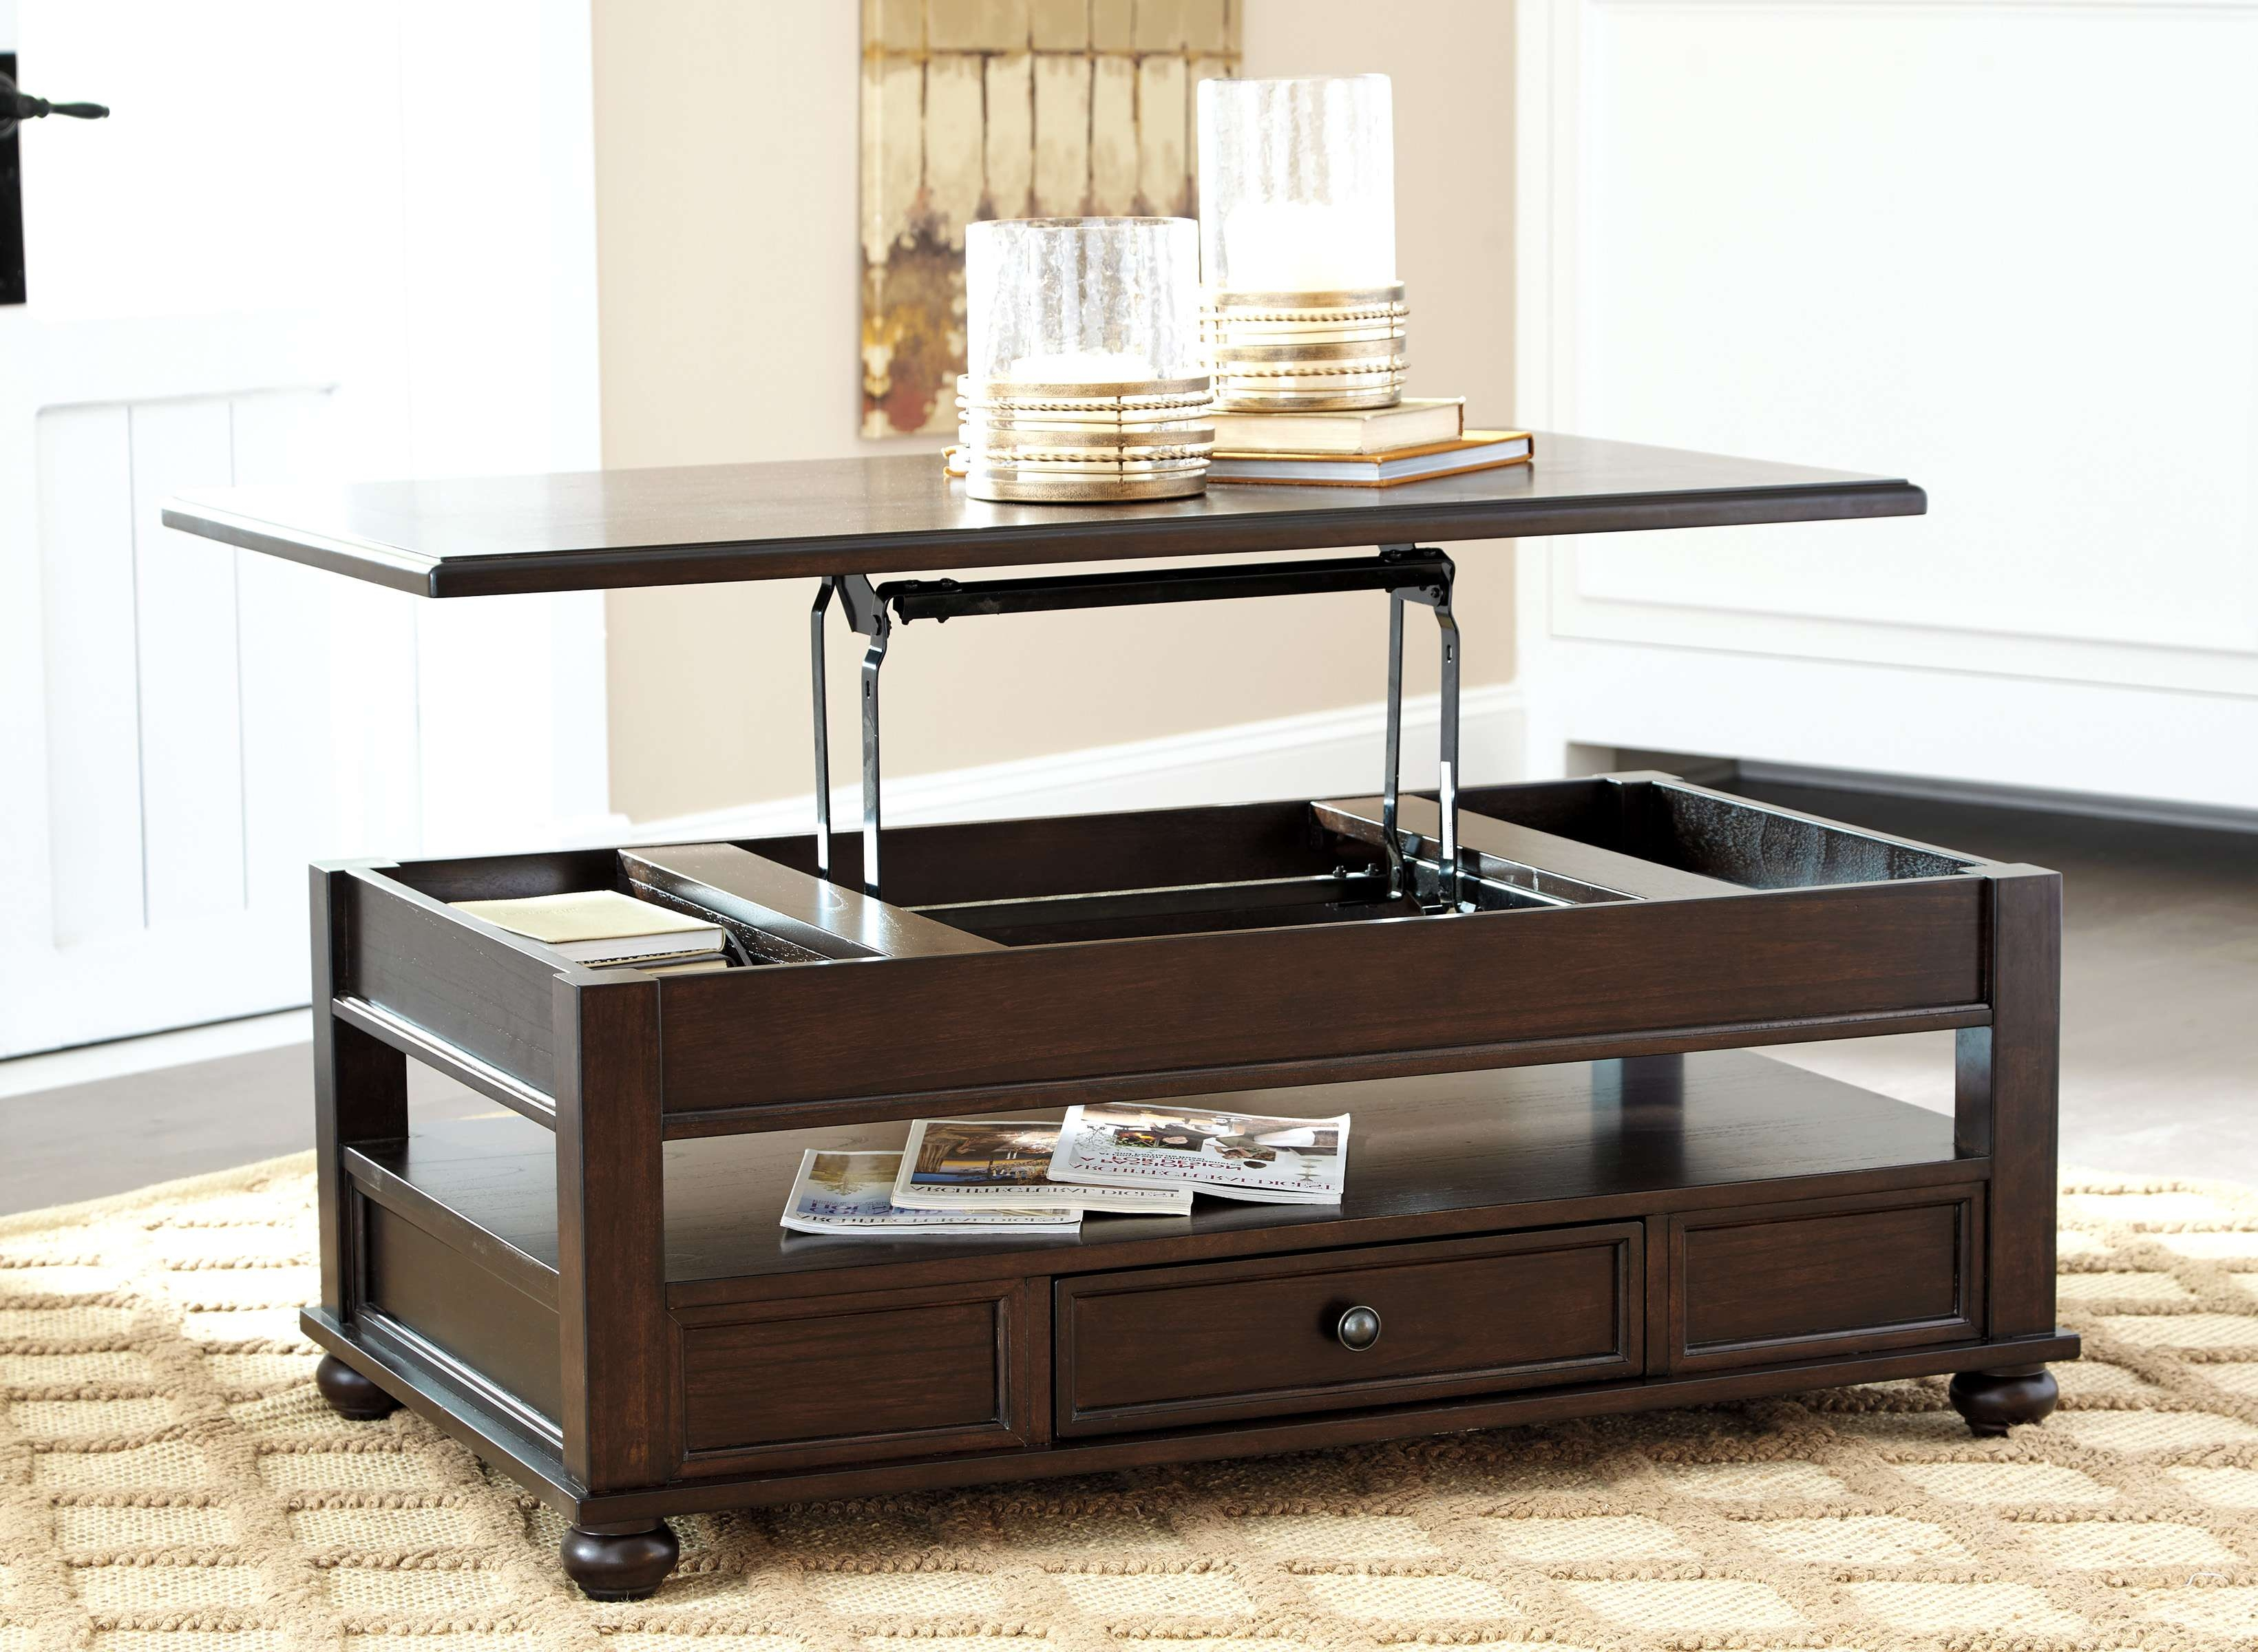 Lift Top Storage Coffee Table – Writehookstudio In Best And Newest Coffee Tables With Storage (View 9 of 20)